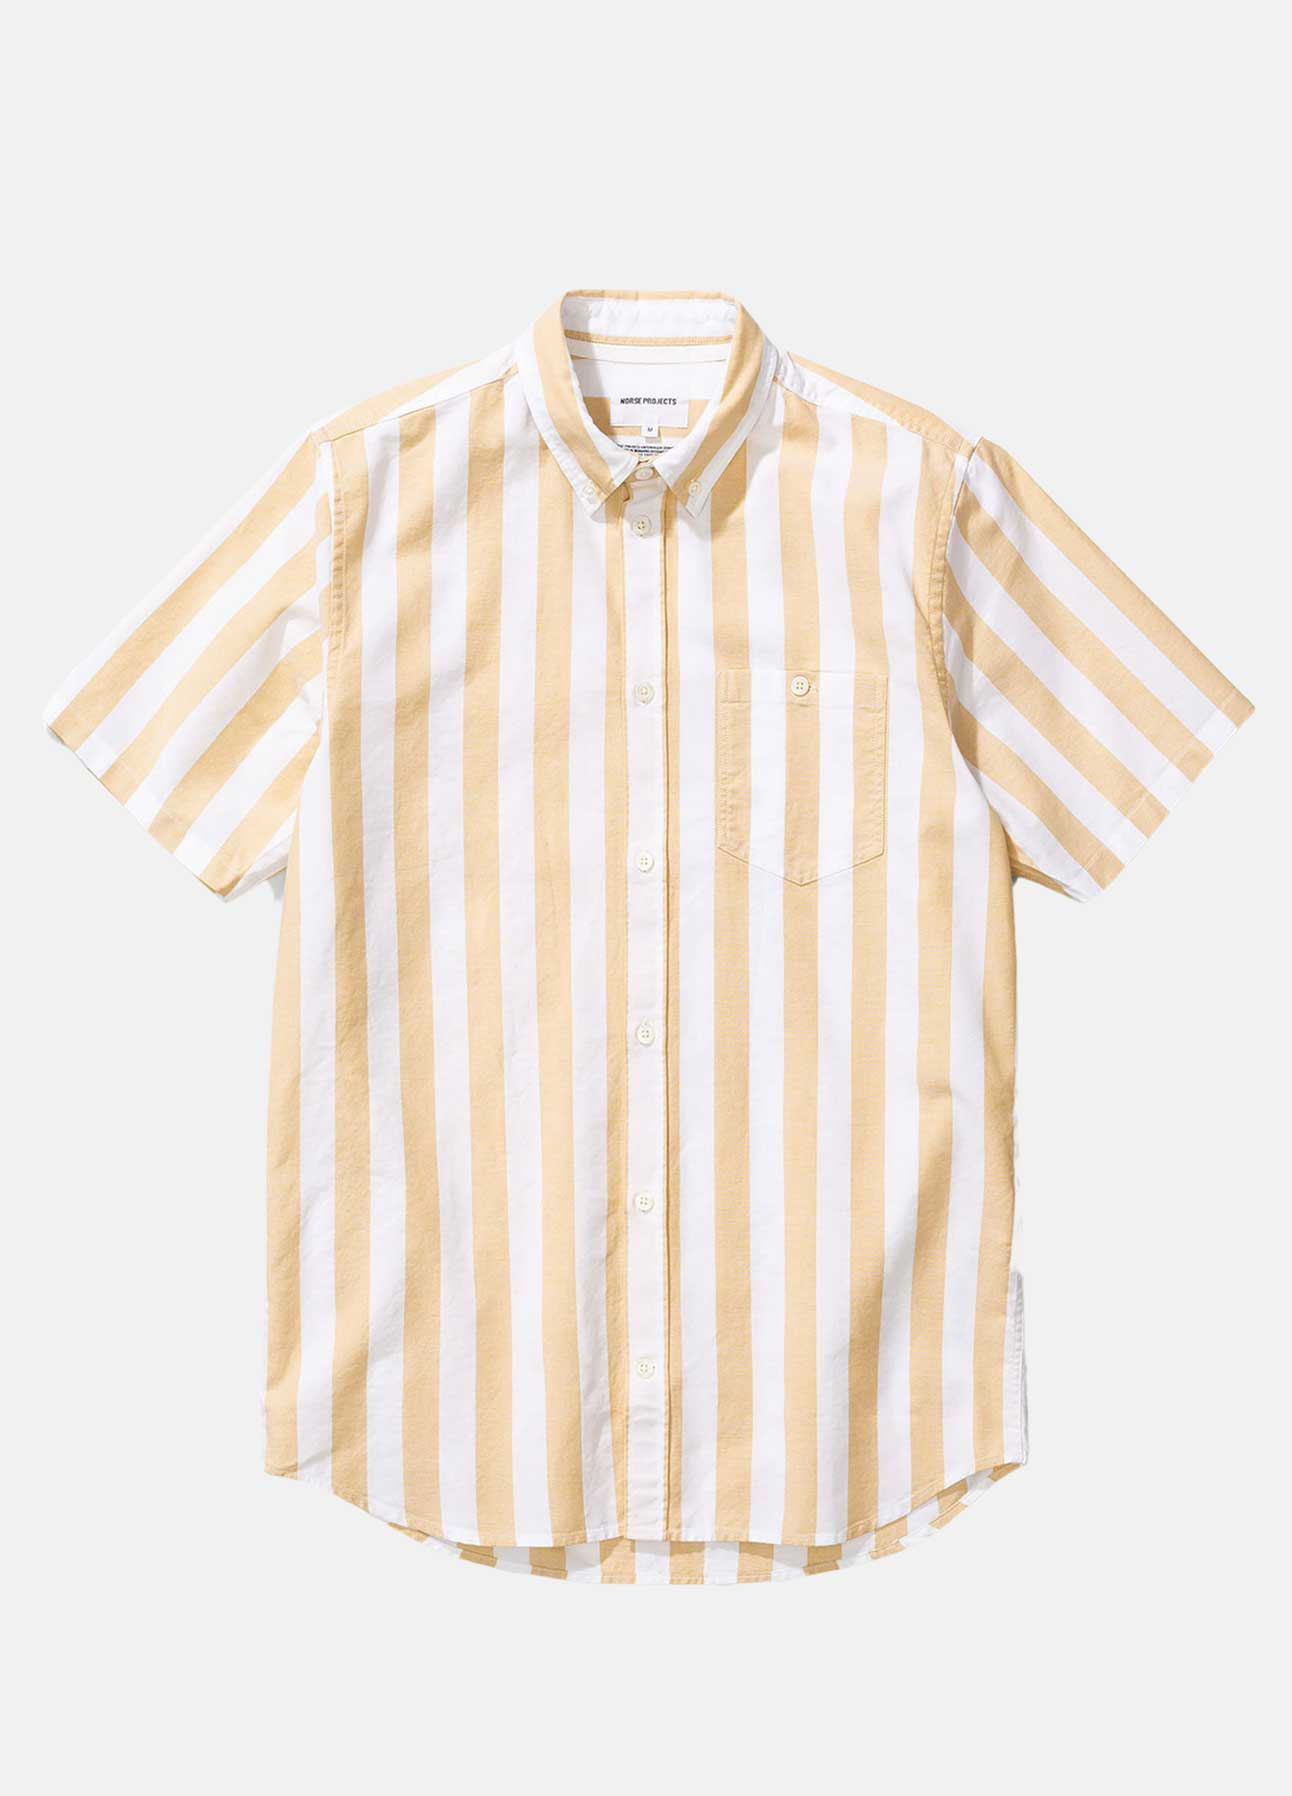 Gul & Hvid Theo Oxford skjorte fra Norse Projects